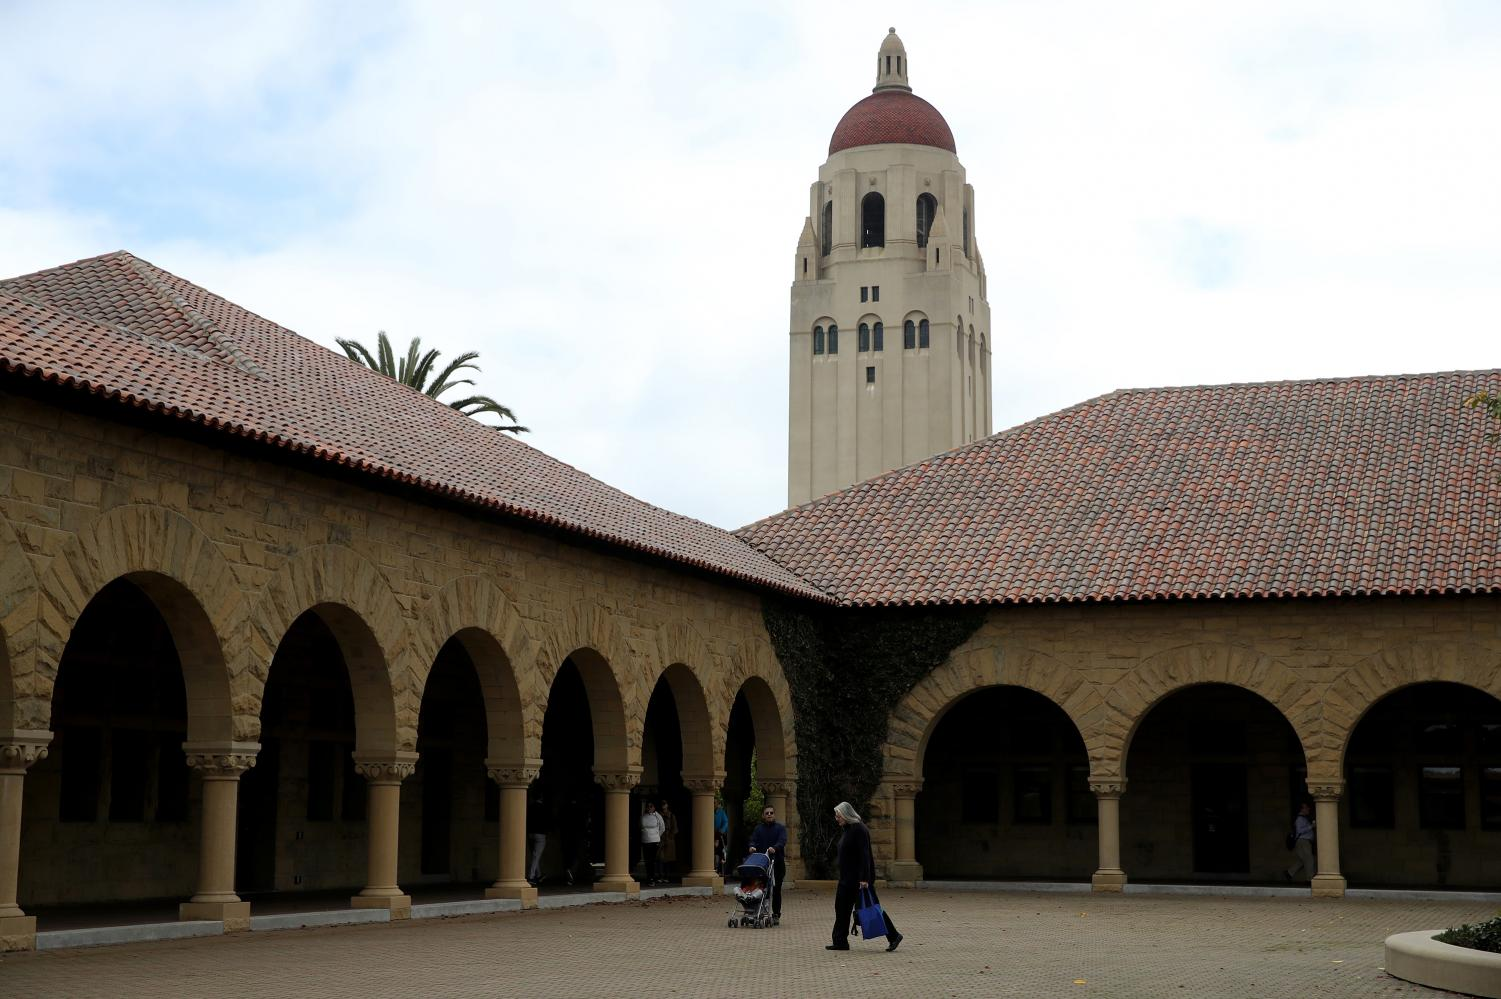 People walk by Hoover Tower on the Stanford University campus on March 12, 2019 in Stanford, Calif.